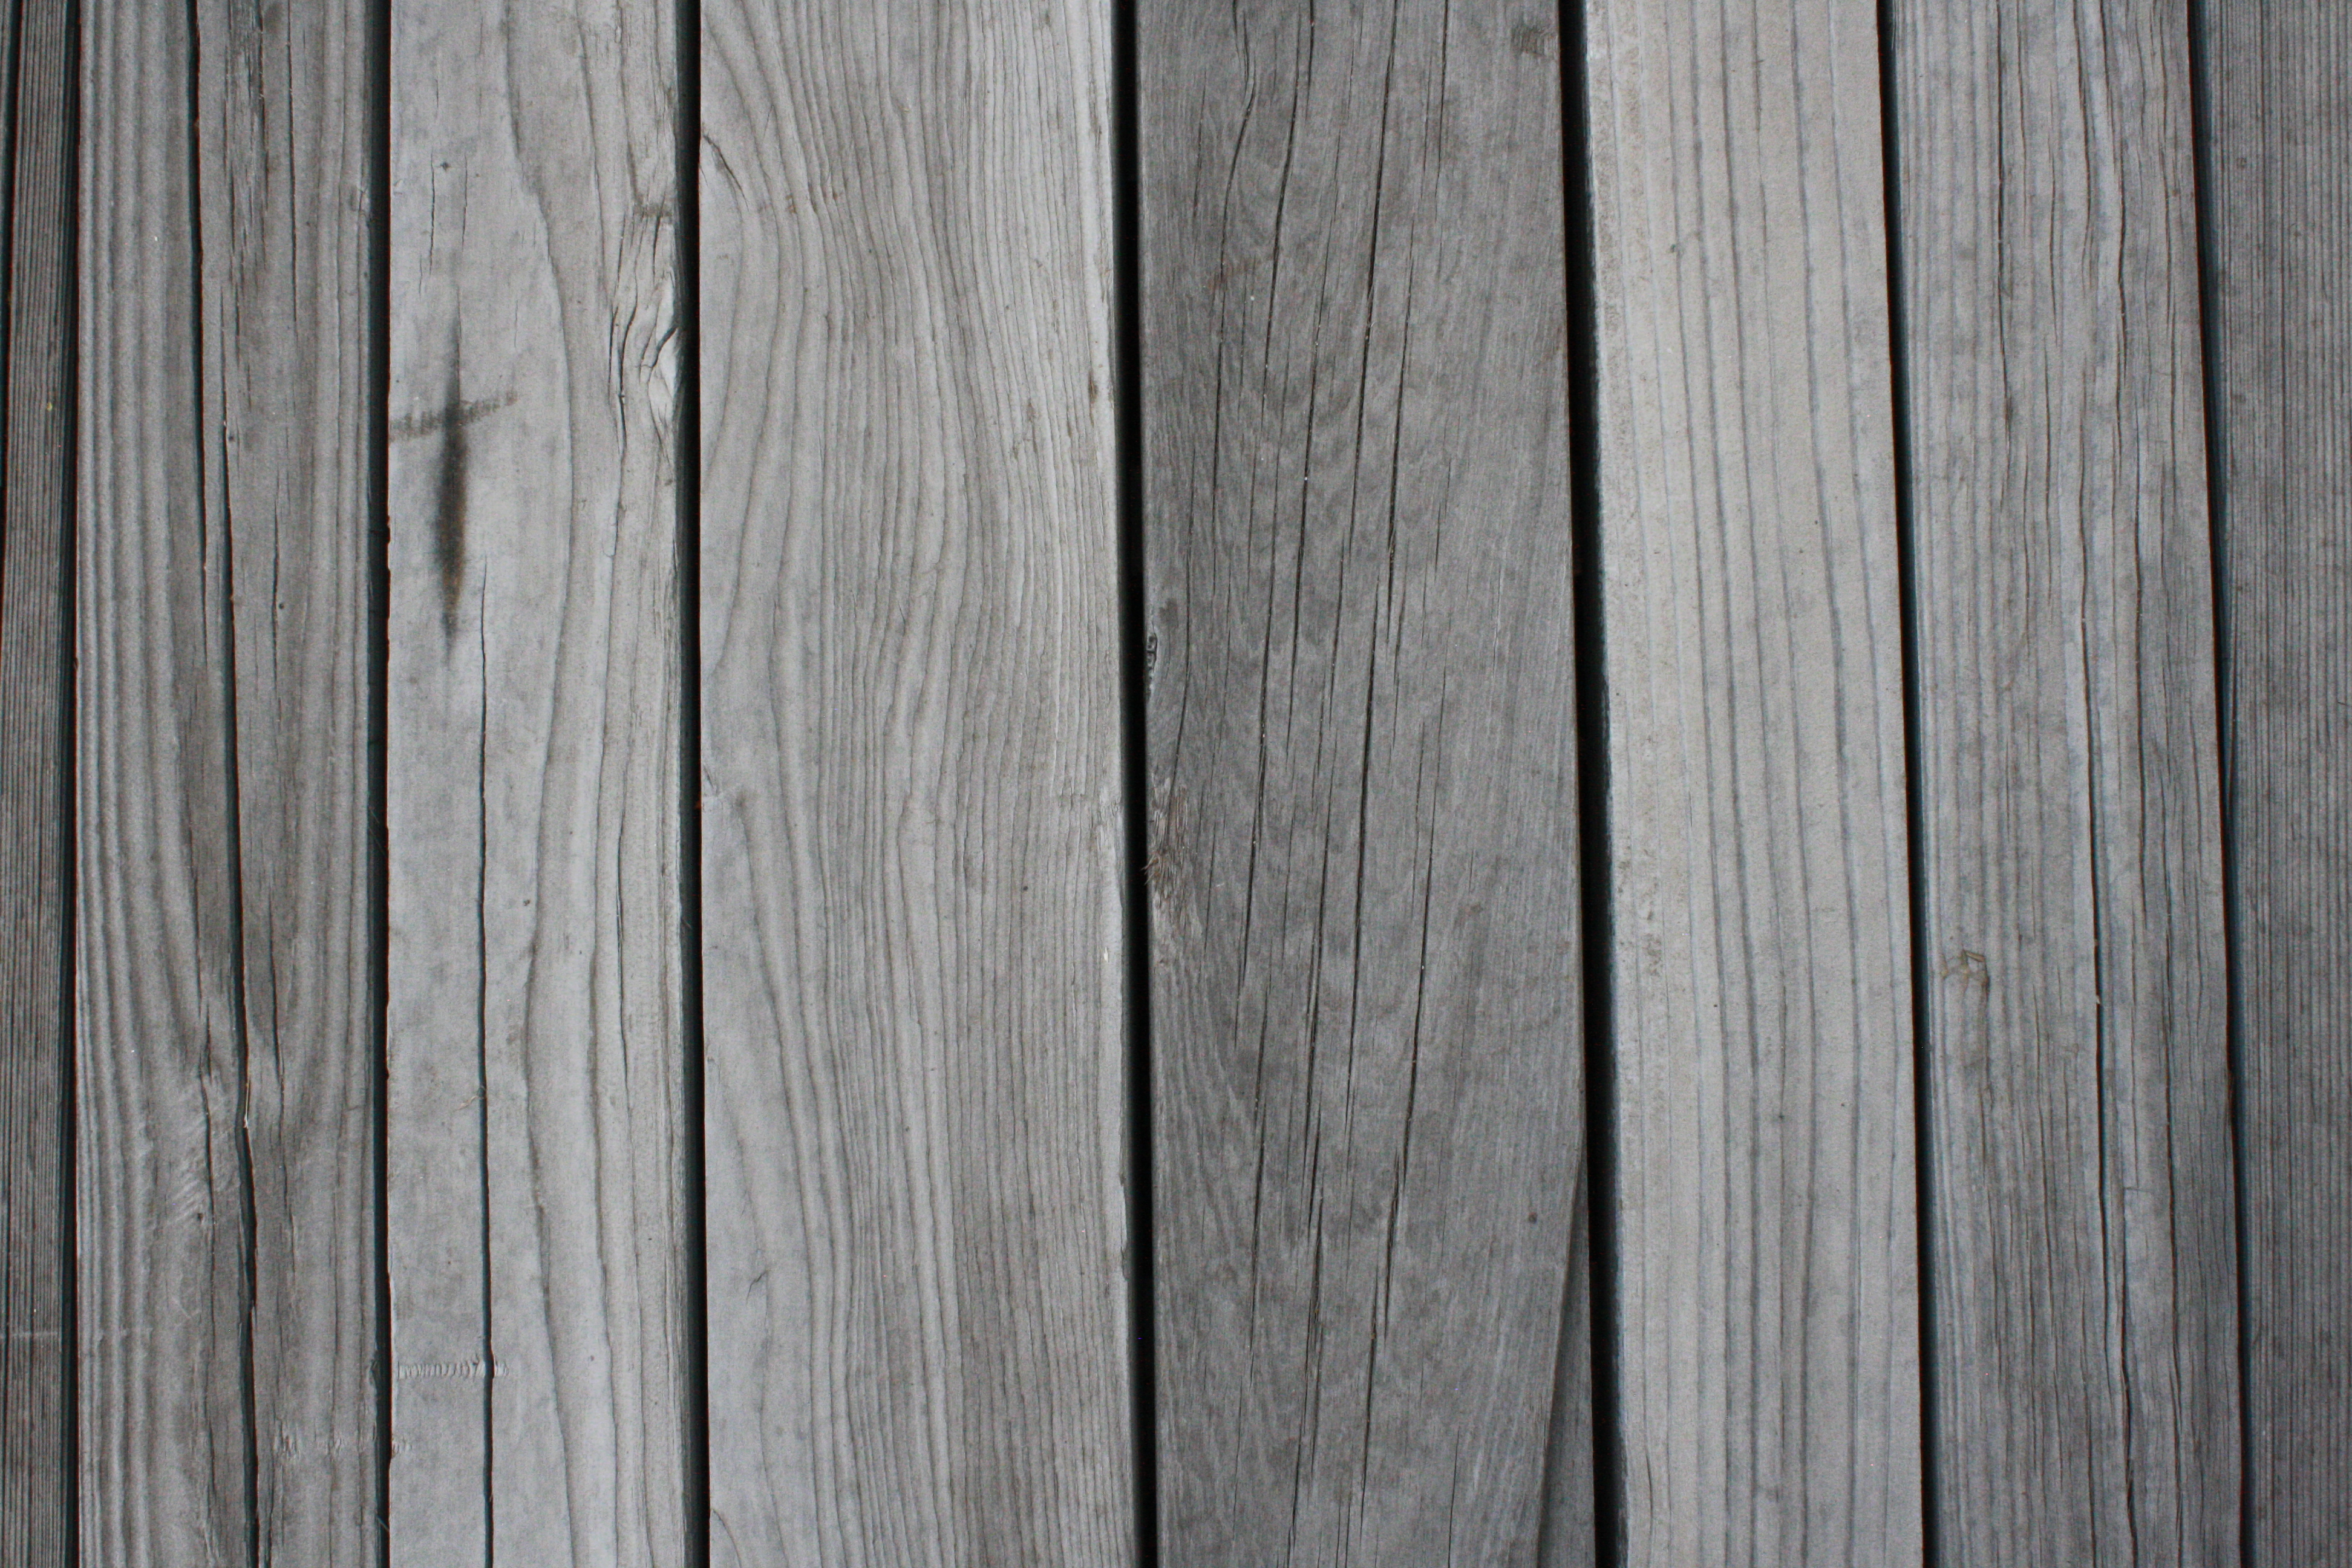 Weathered gray wood planks texture picture free